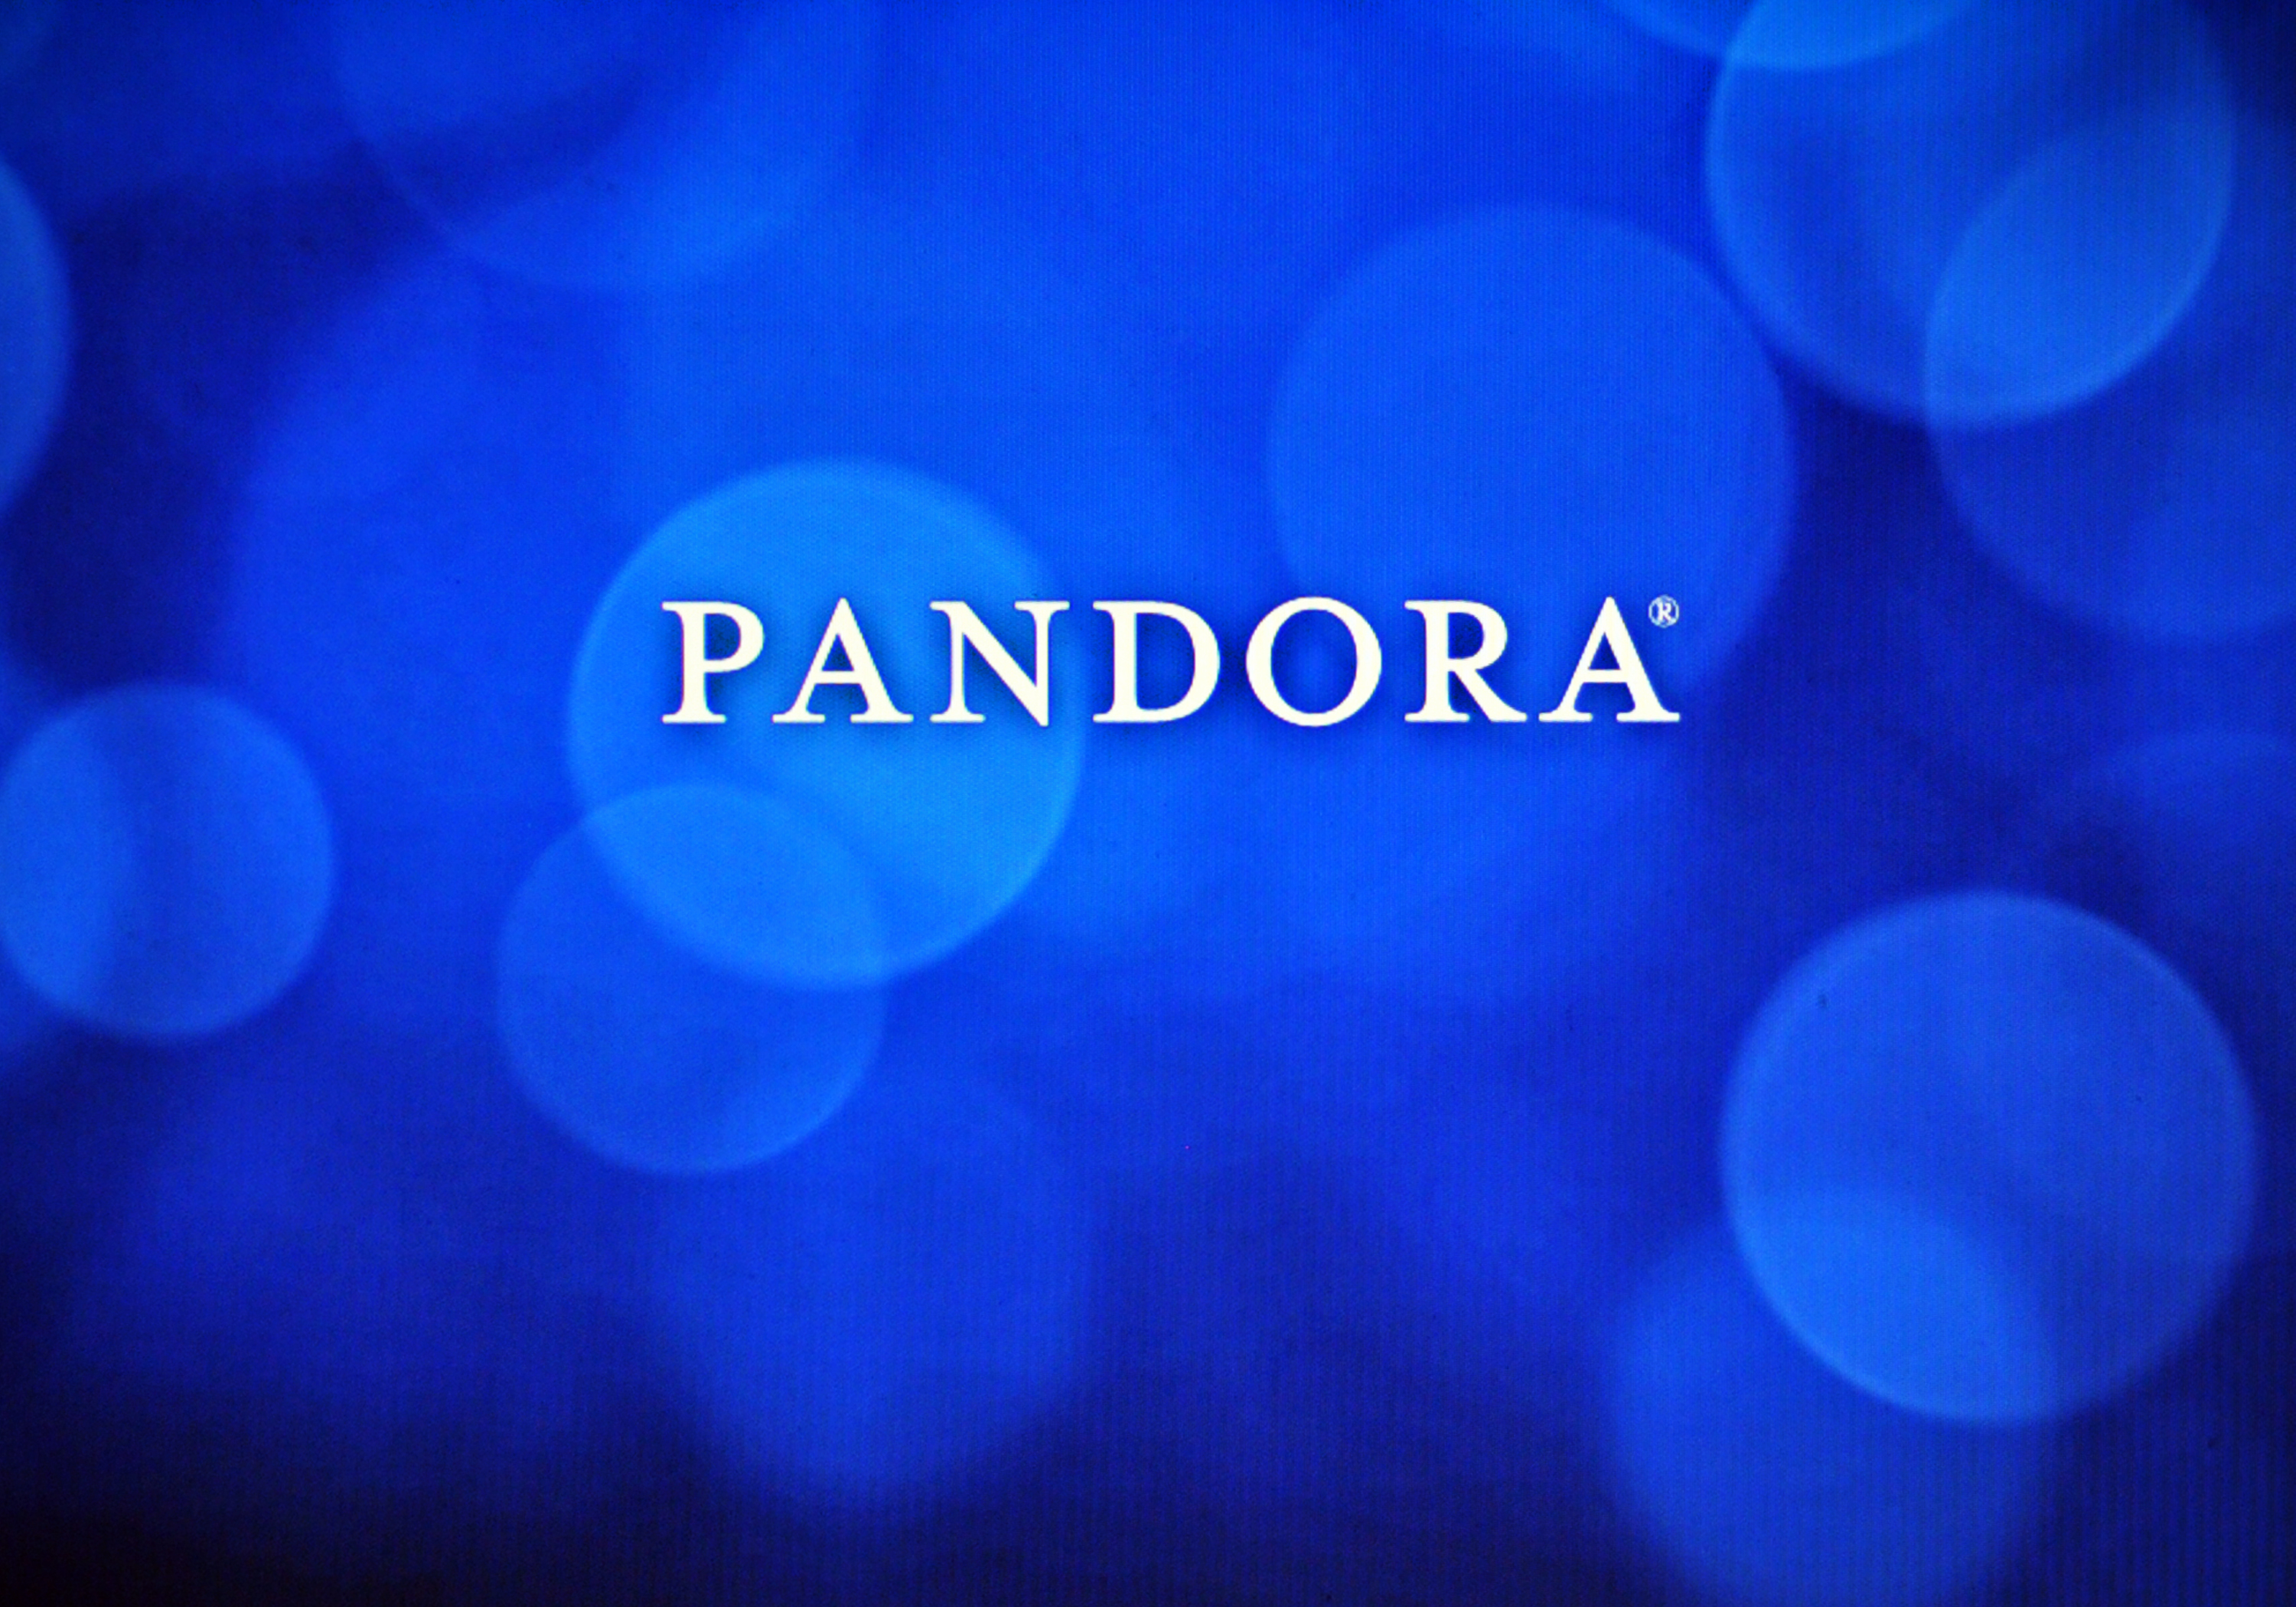 Epic Pandora stations for every occasion